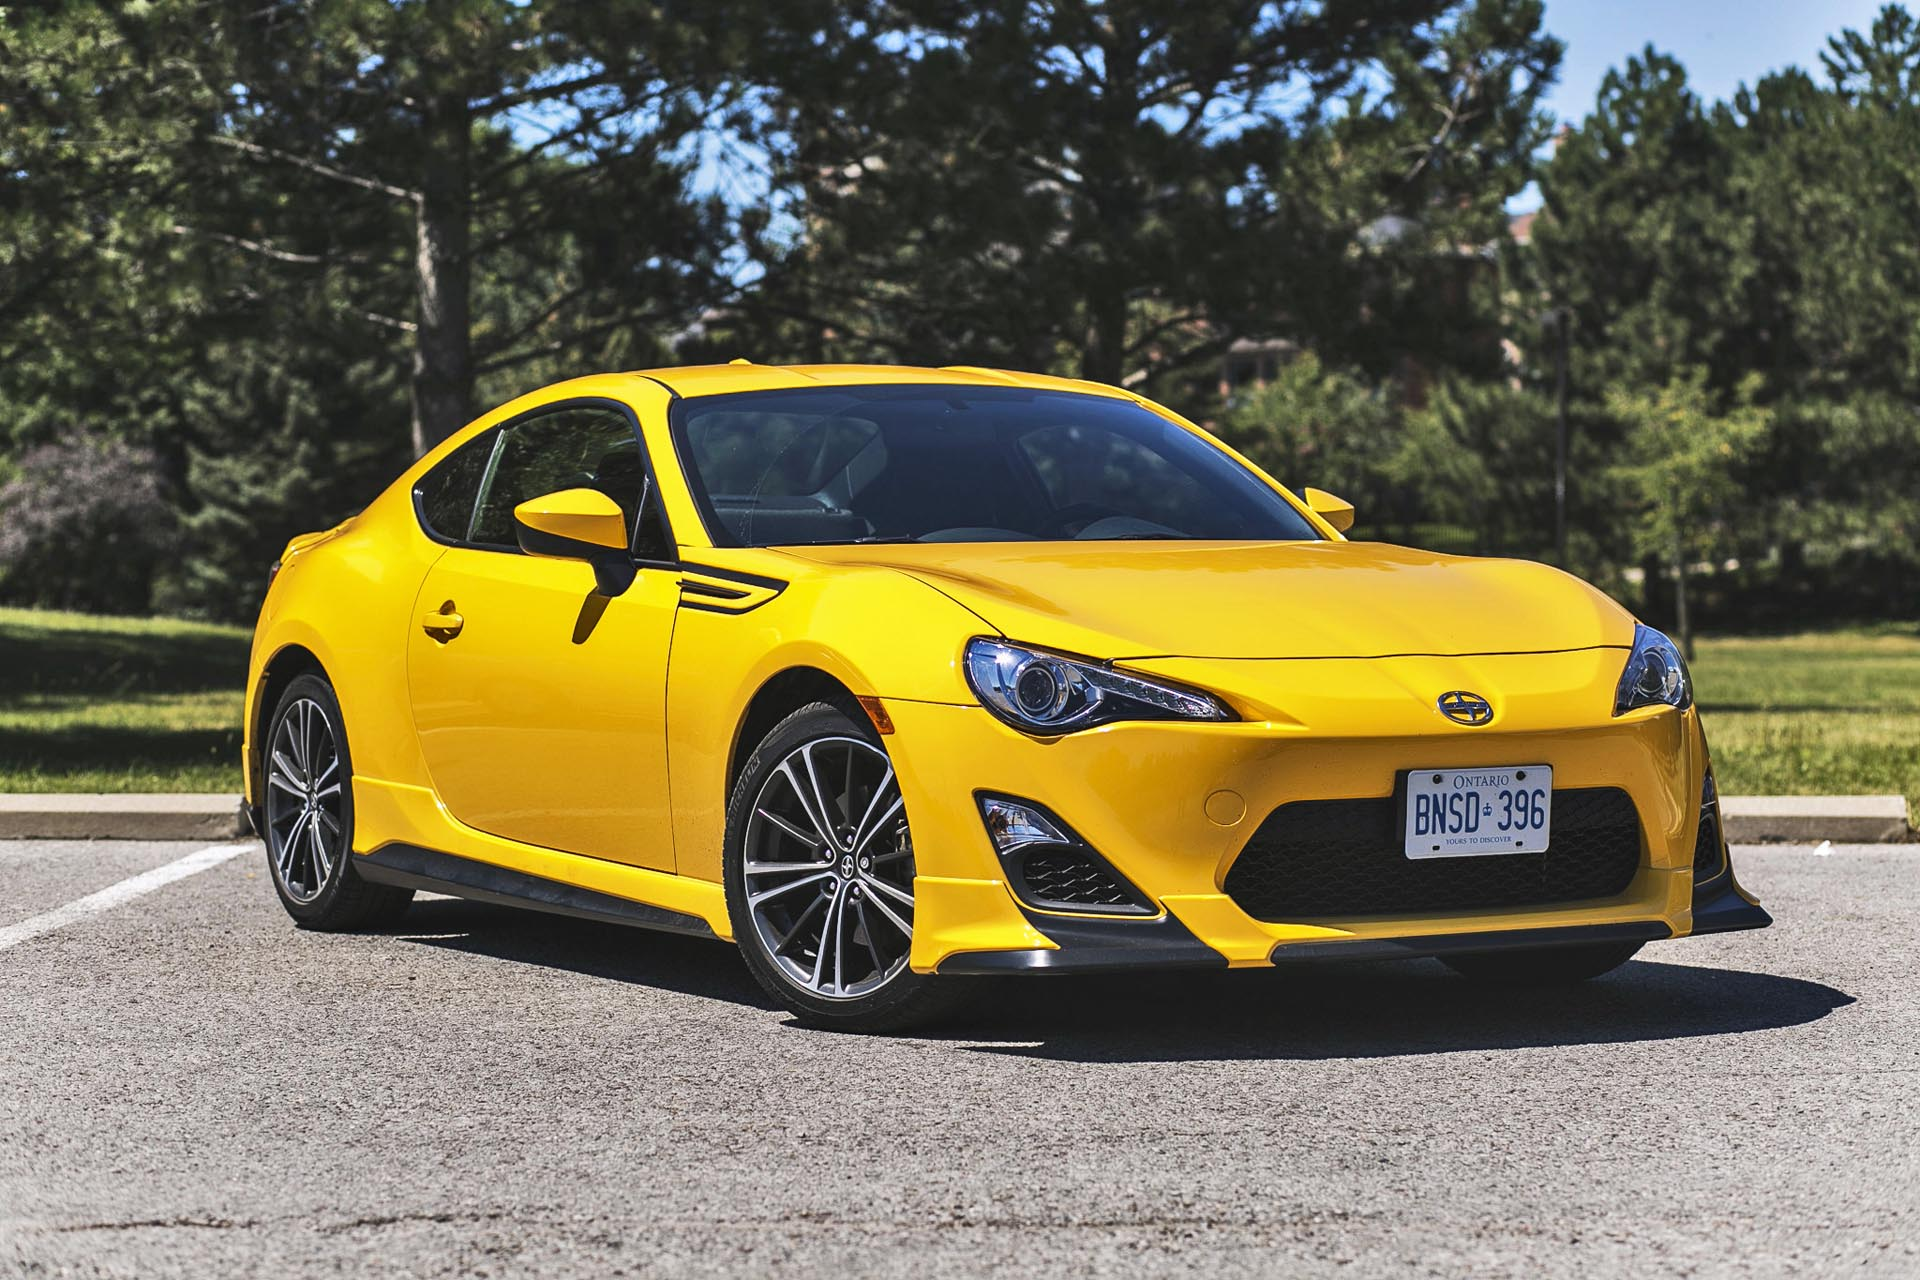 2015 scion fr s release series 1 0 2015 scion fr s release series 1 0. Black Bedroom Furniture Sets. Home Design Ideas